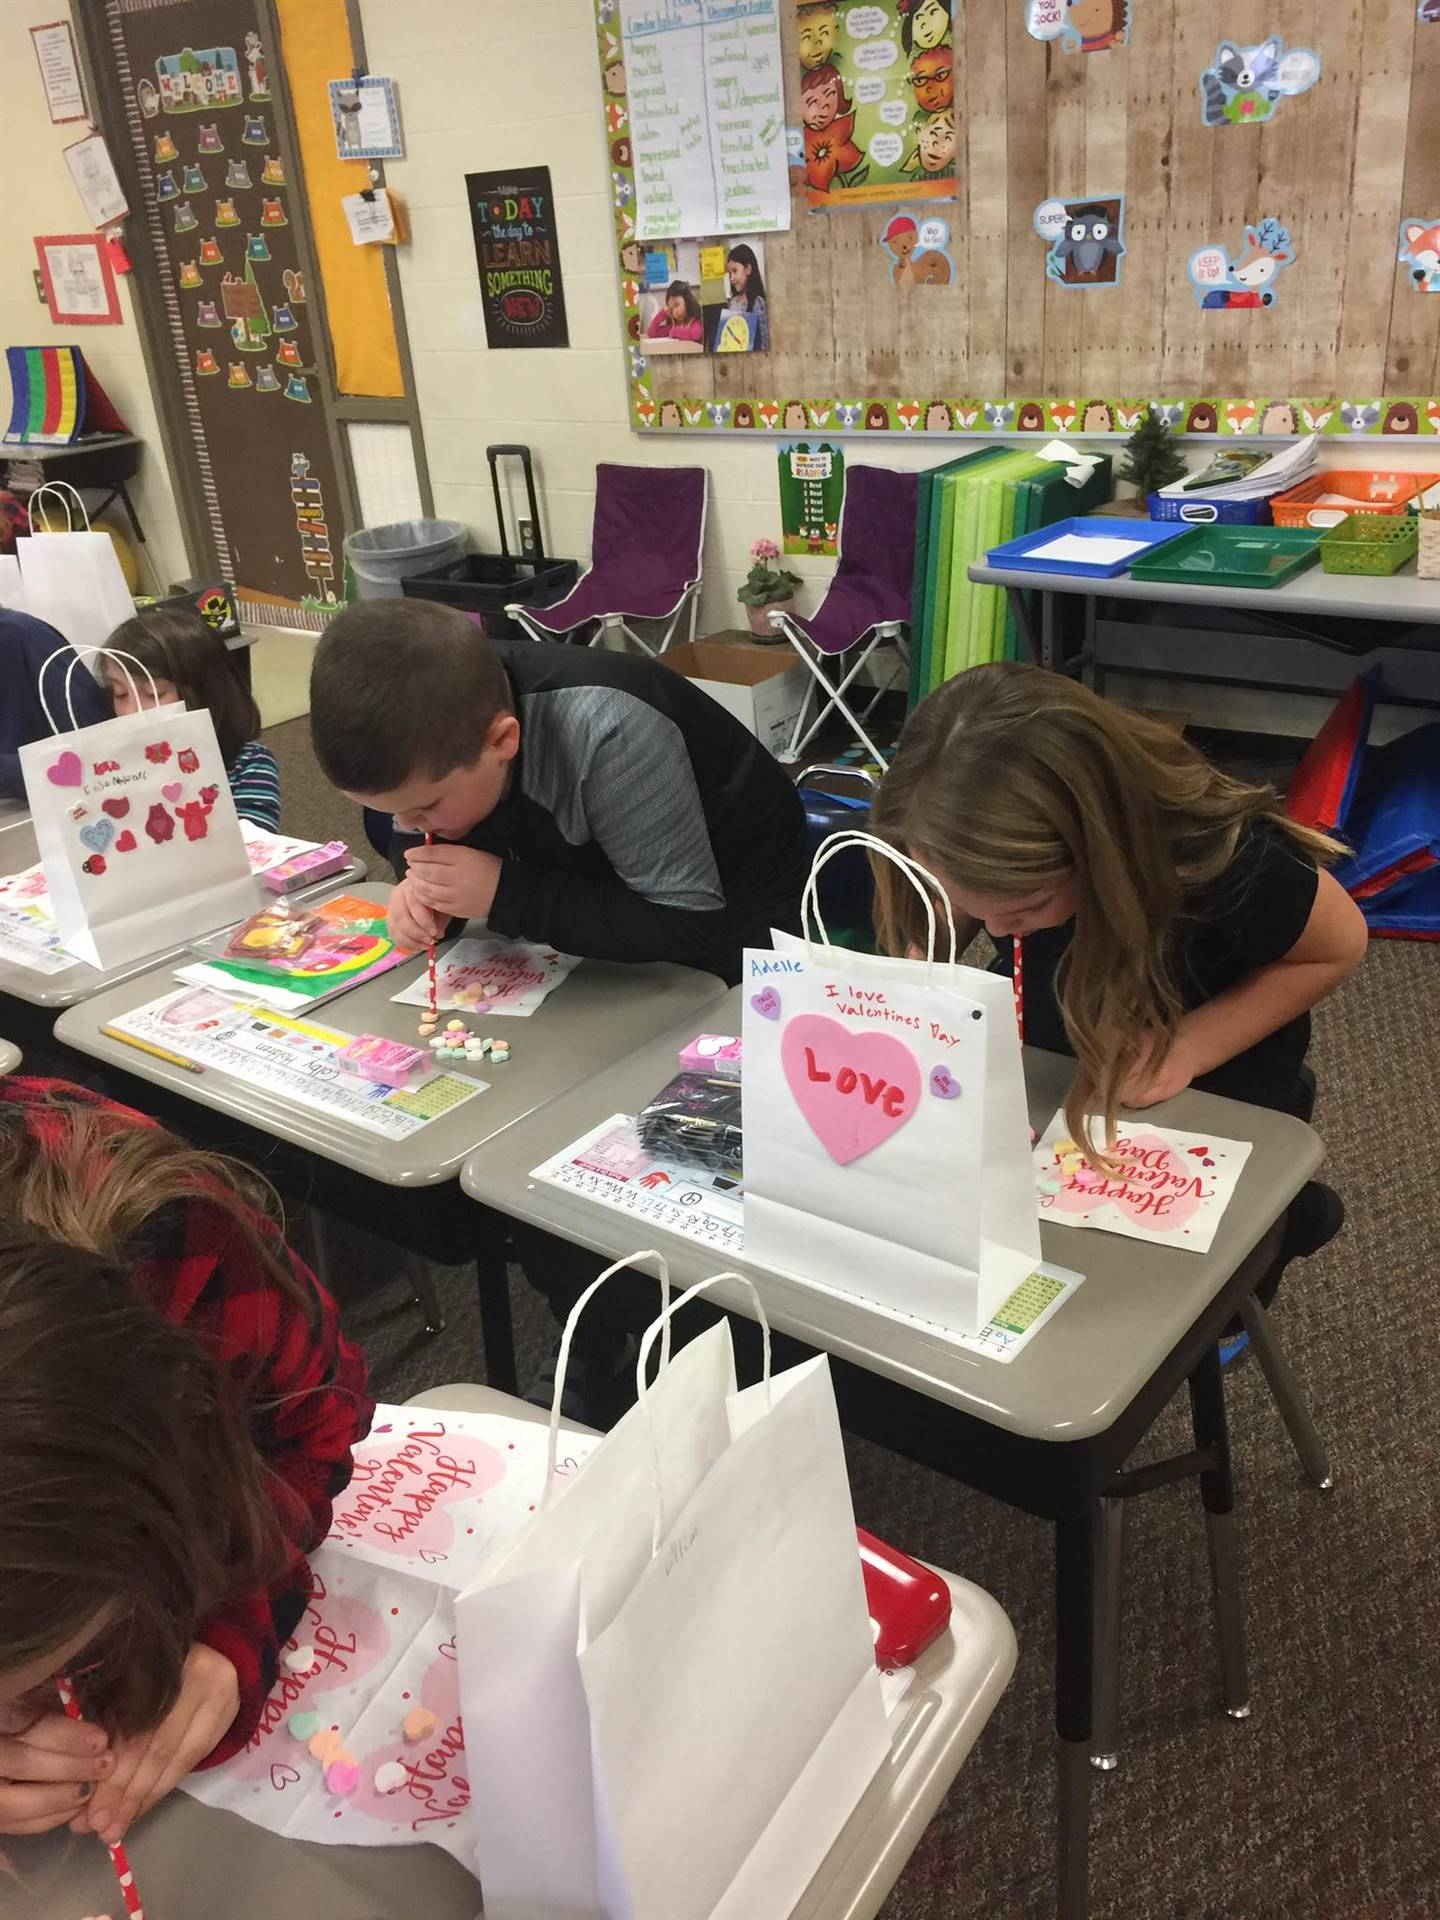 Celebrating Valentine's Day with crafts, food, fun, and games!